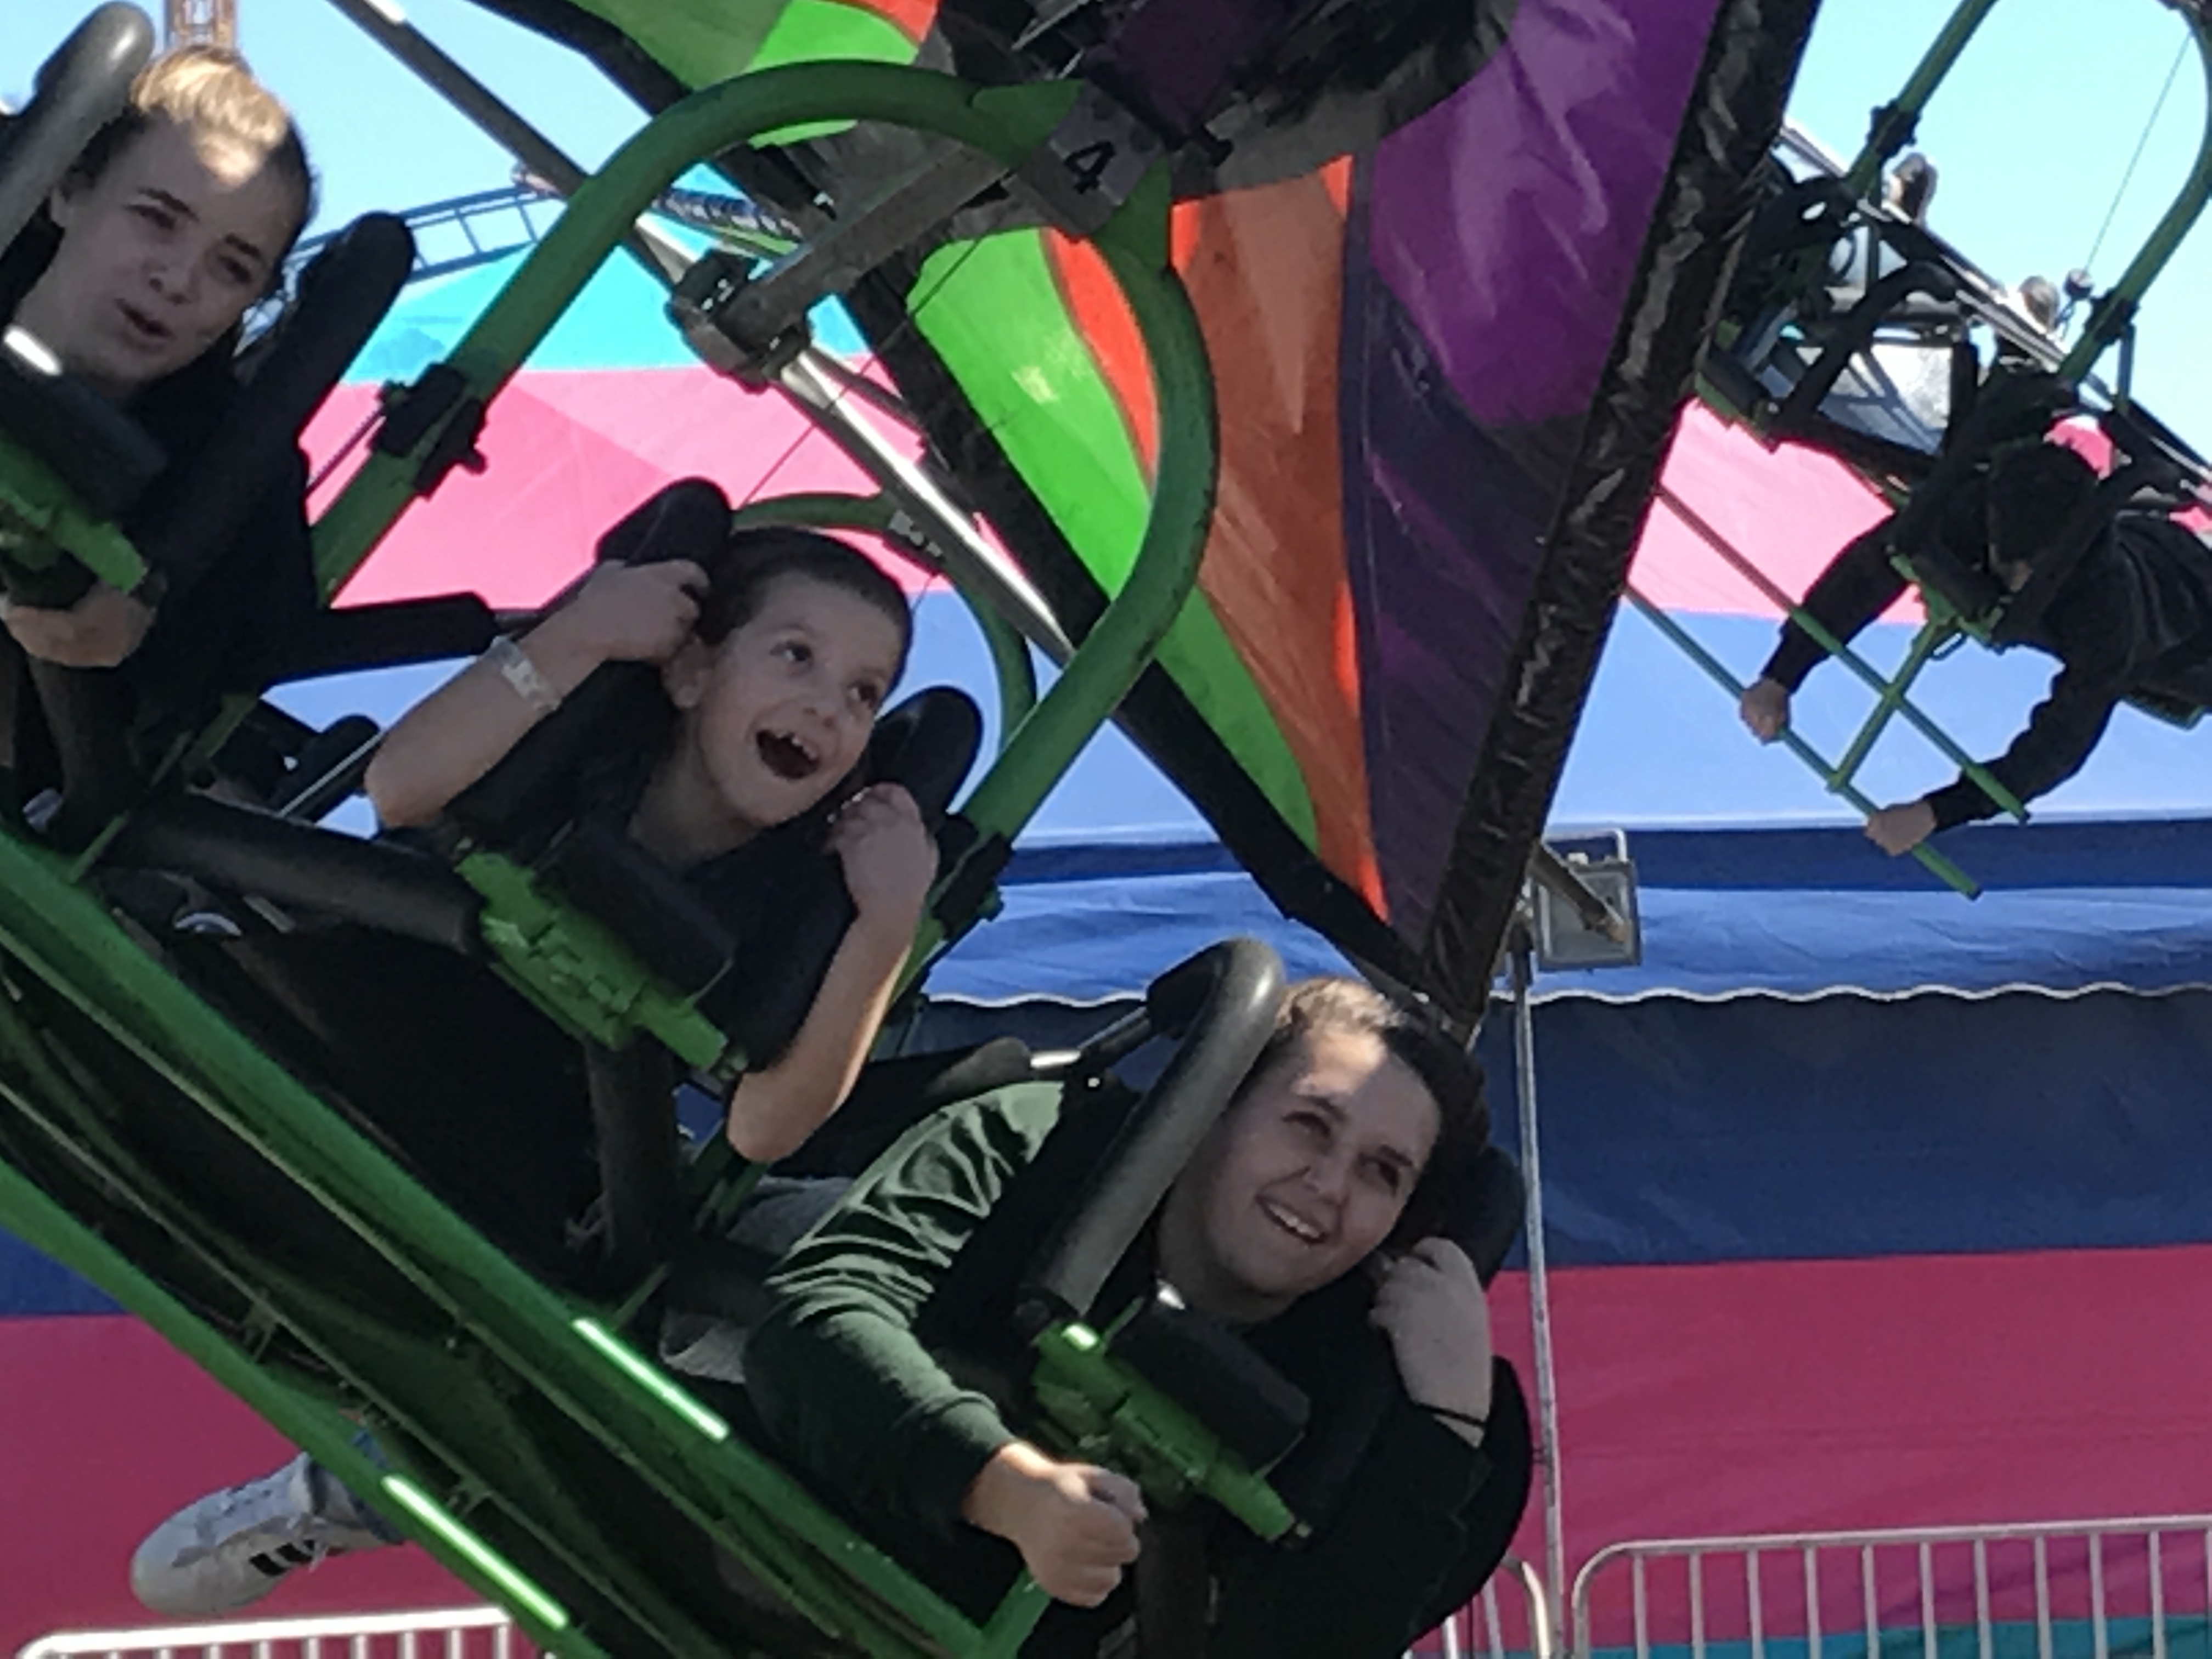 <div class='meta'><div class='origin-logo' data-origin='WTVD'></div><span class='caption-text' data-credit=''>North Carolina State Fair is in full swing and people seem to be enjoying what the 150th year has to offer.</span></div>